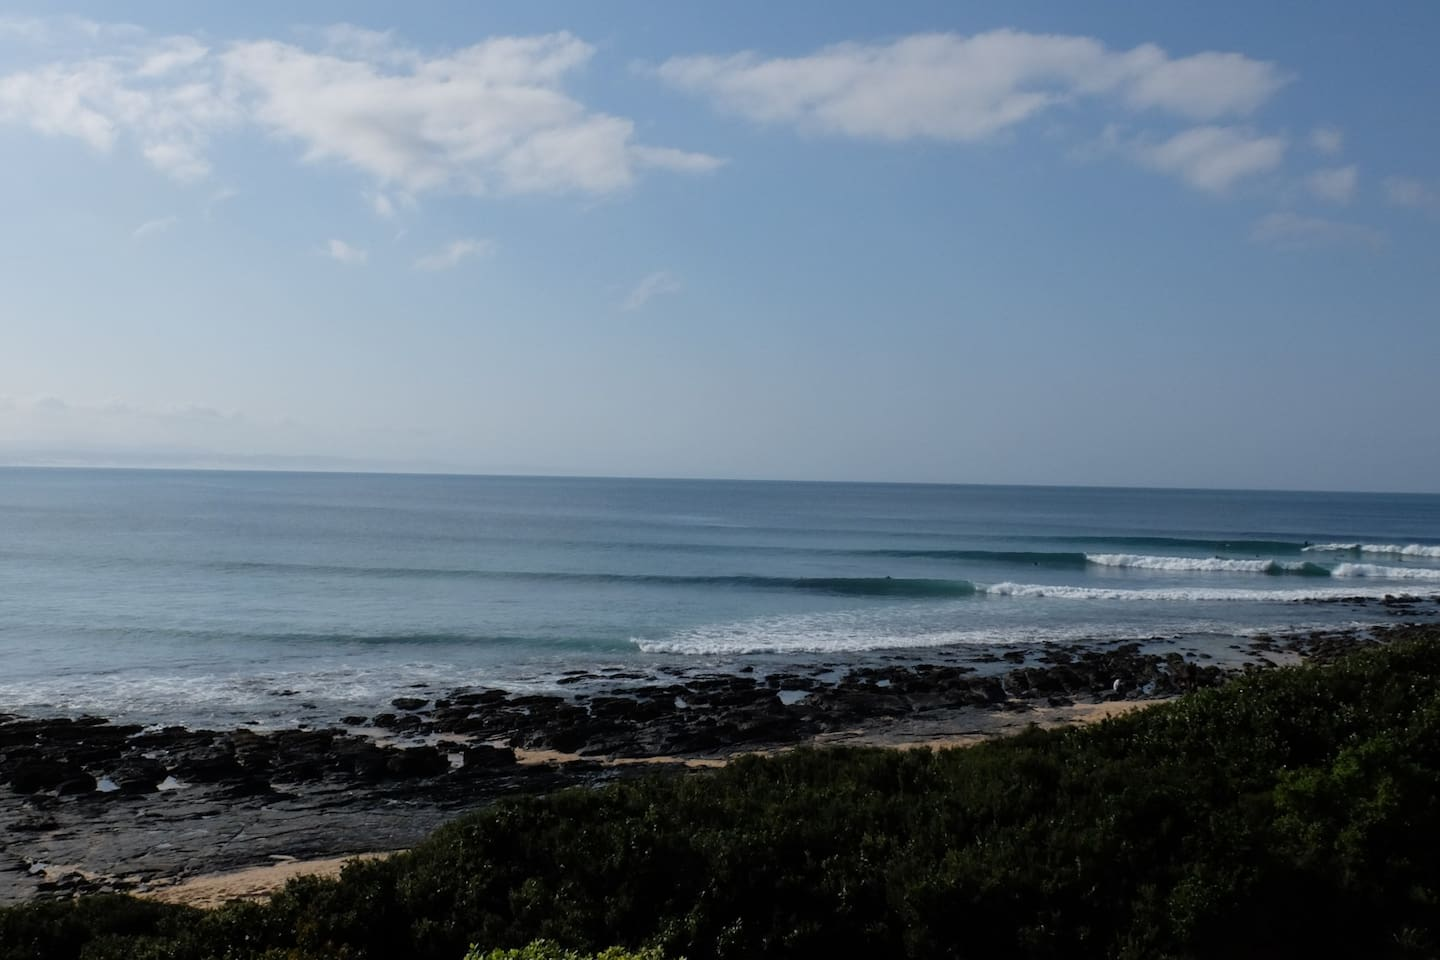 Uninterrupted sea view from balcony. Relax and watch the dolphins and surfers play.